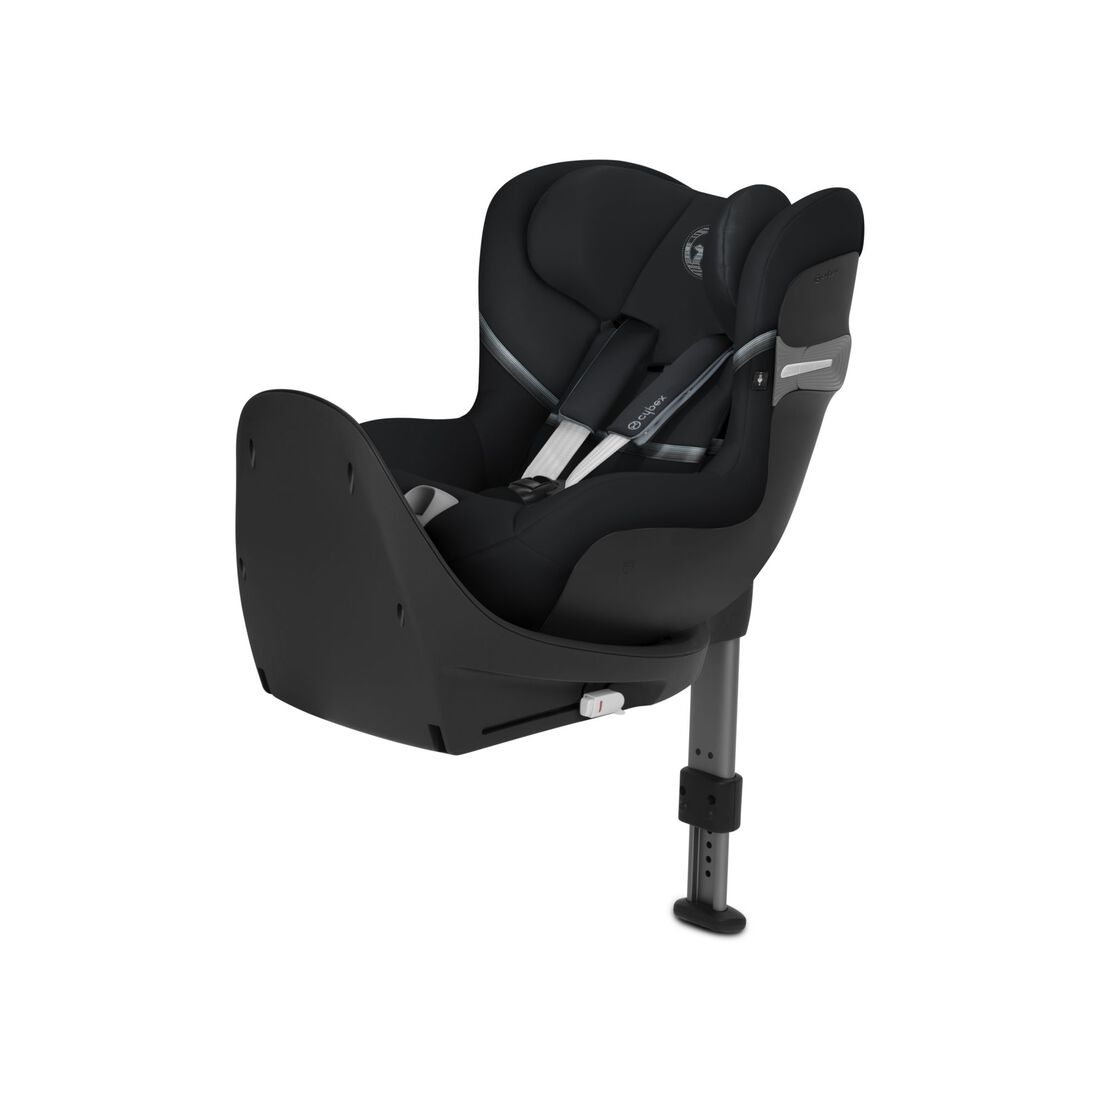 CYBEX Sirona S i-Size - Deep Black in Deep Black large image number 1